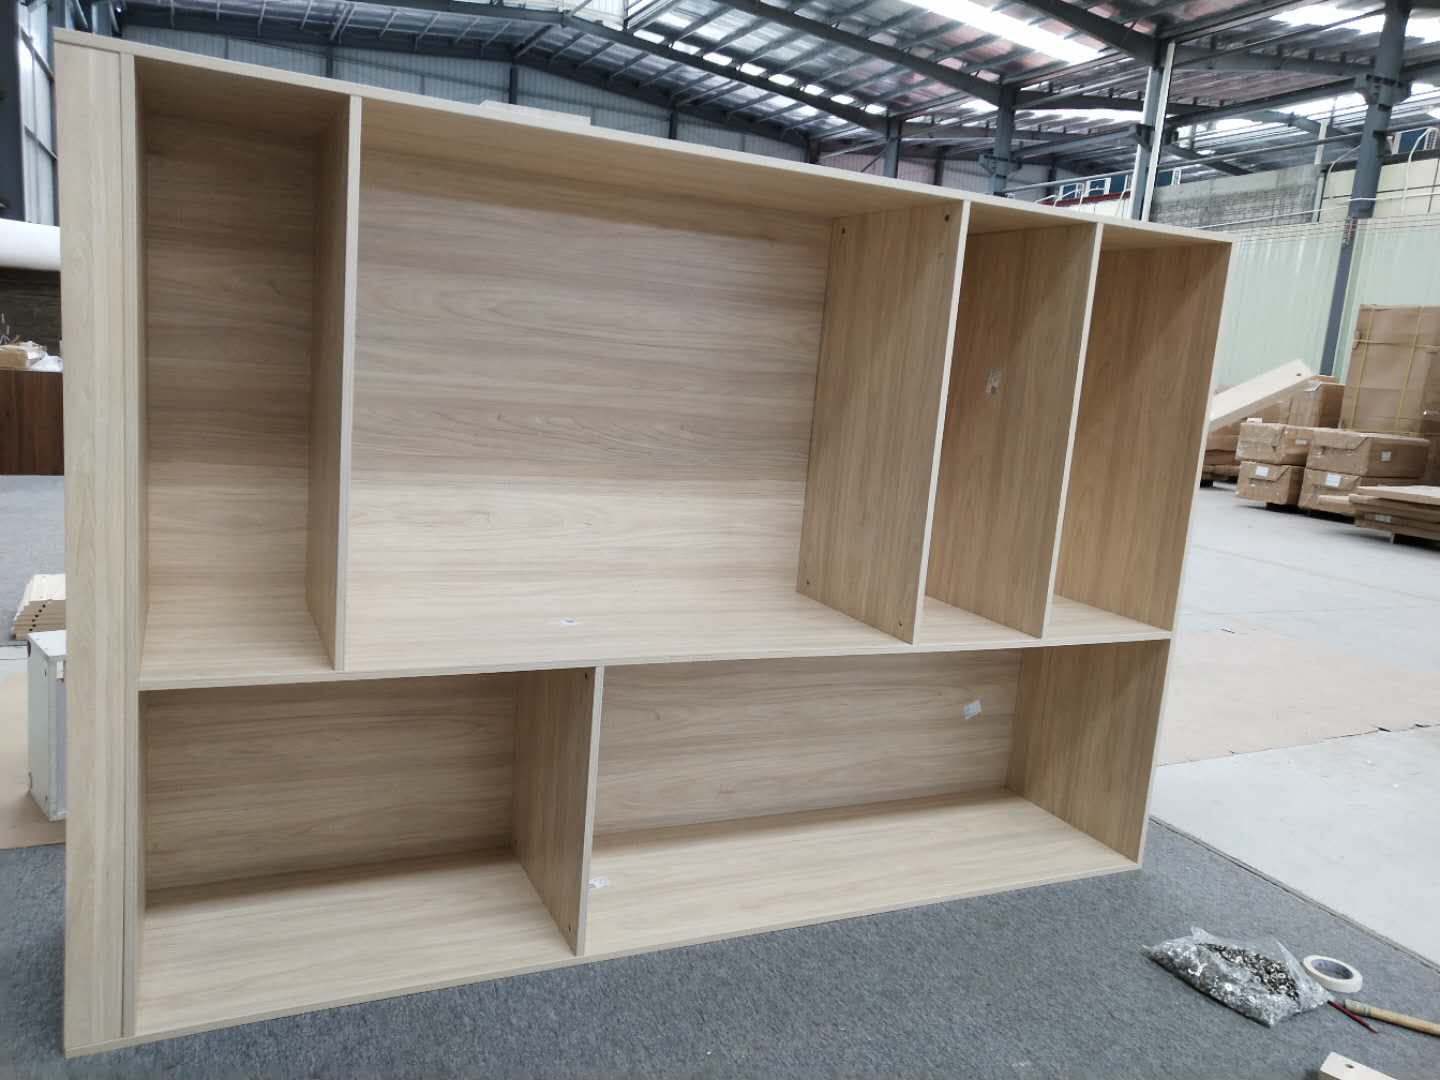 Apartment Ash Solid Wood Australia Baked Enamel Kitchen Cabinet Buy Baked Enamel Kitchen Cabinet Solid Wood Australia Kitchen Cabinet Plastic